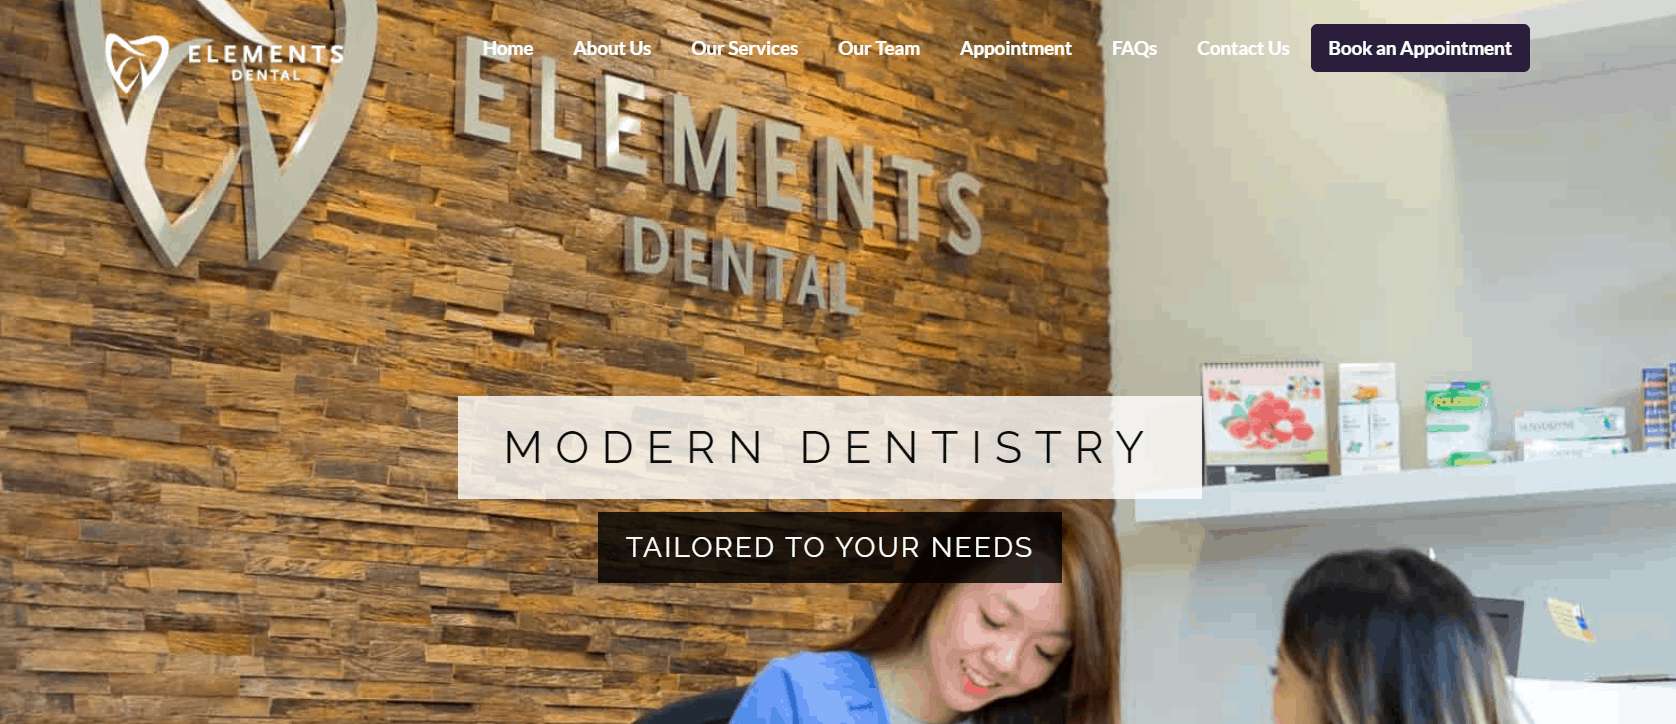 Elements Dental has the Best Specialist and General Dental Care in Singapore